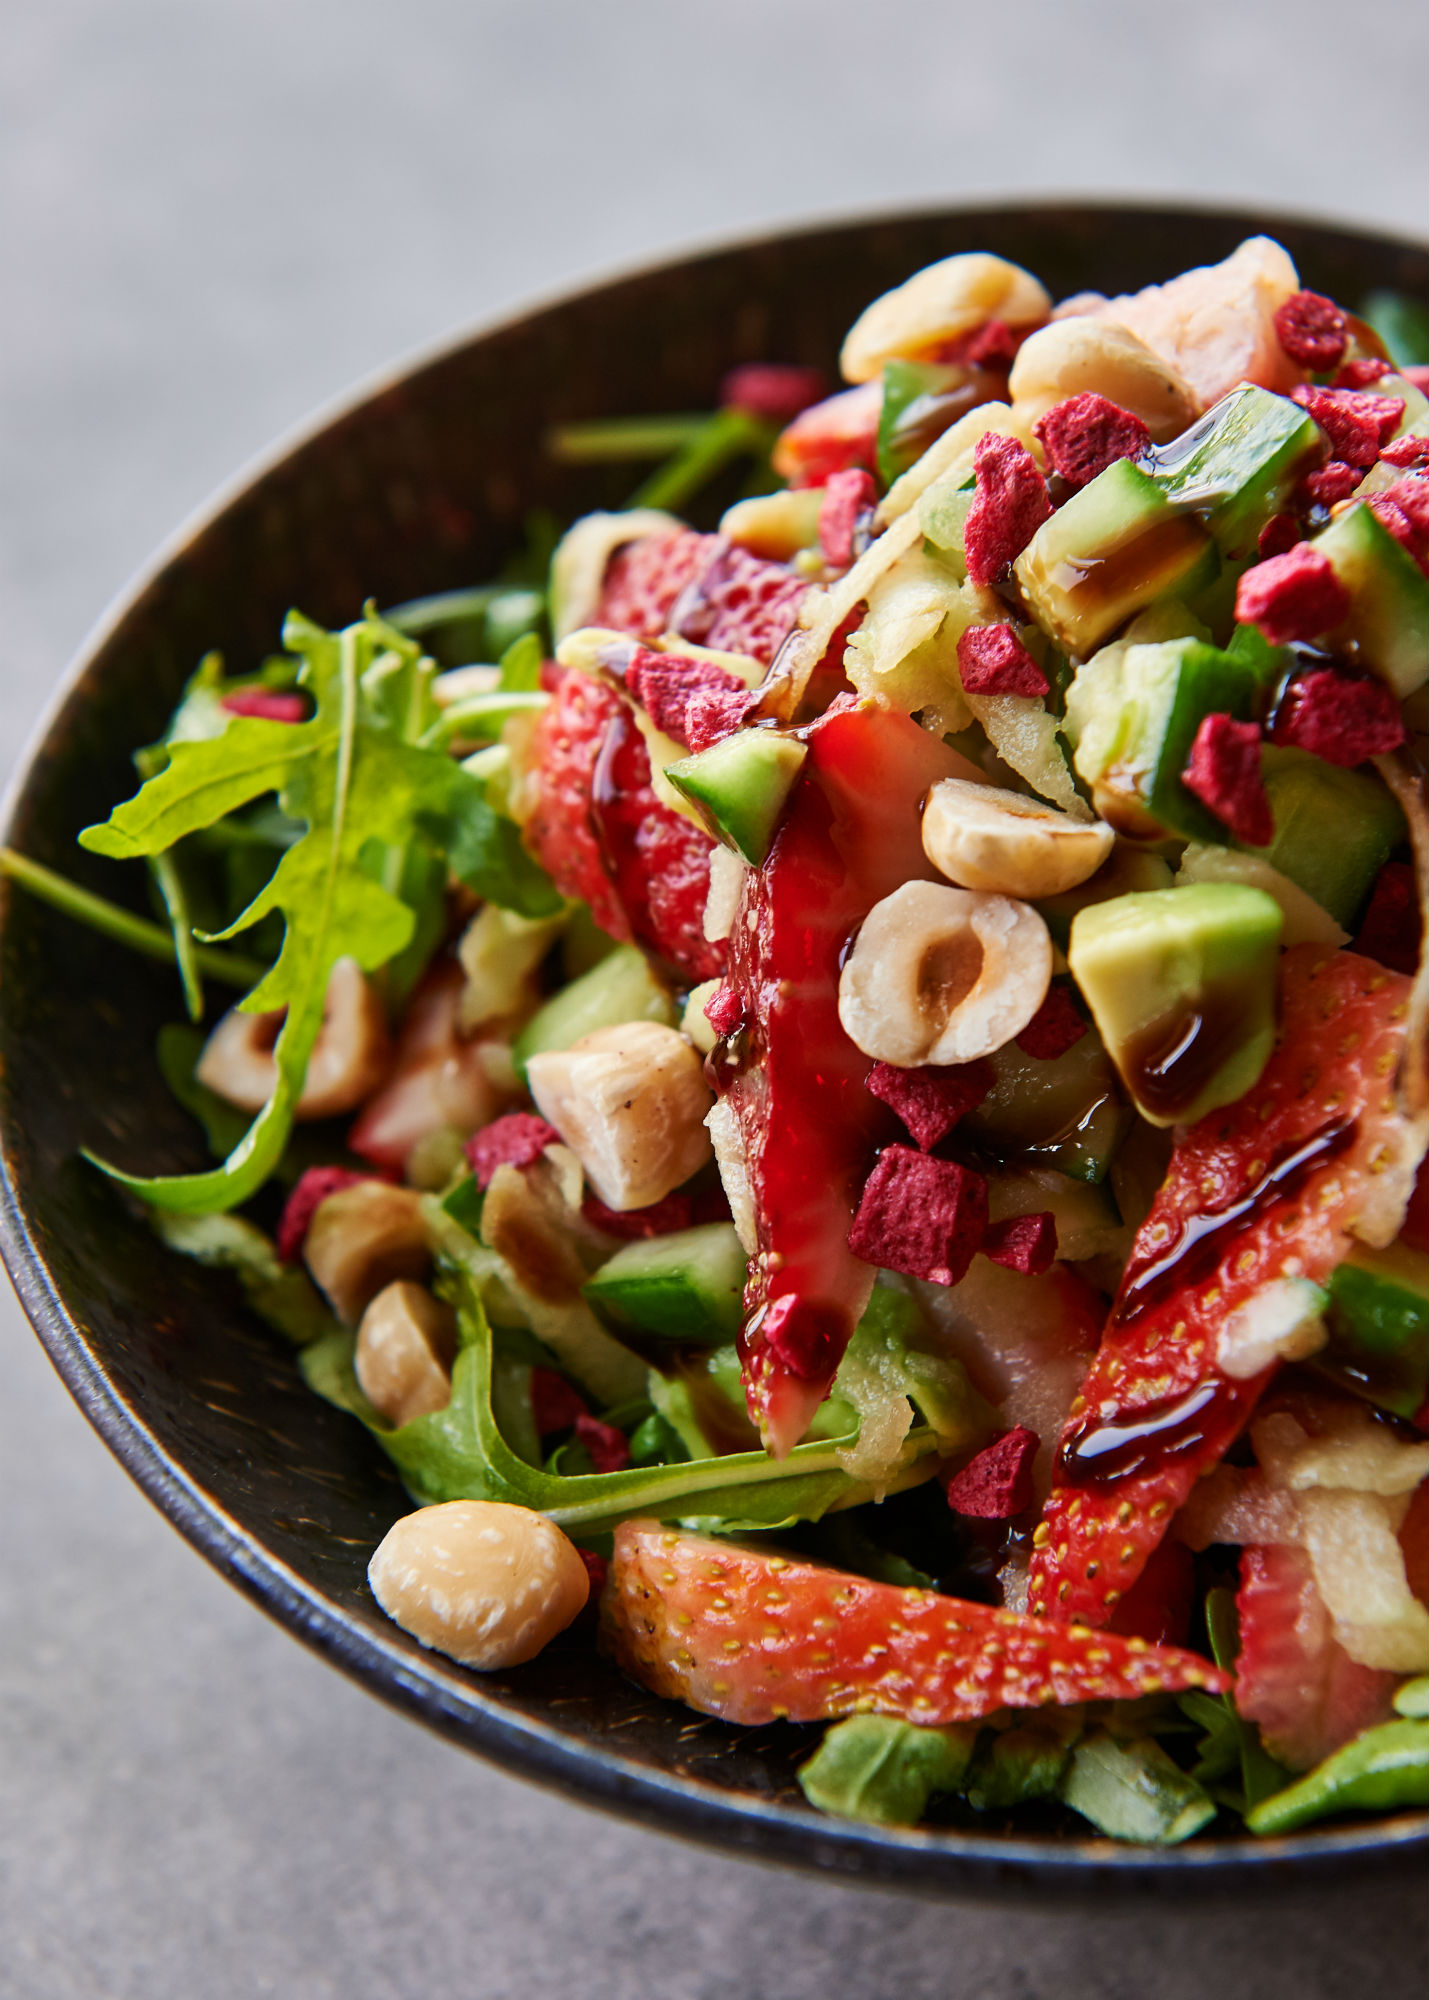 A mix of textures and flavours in the balsamic strawberry and arugula salad wins us over